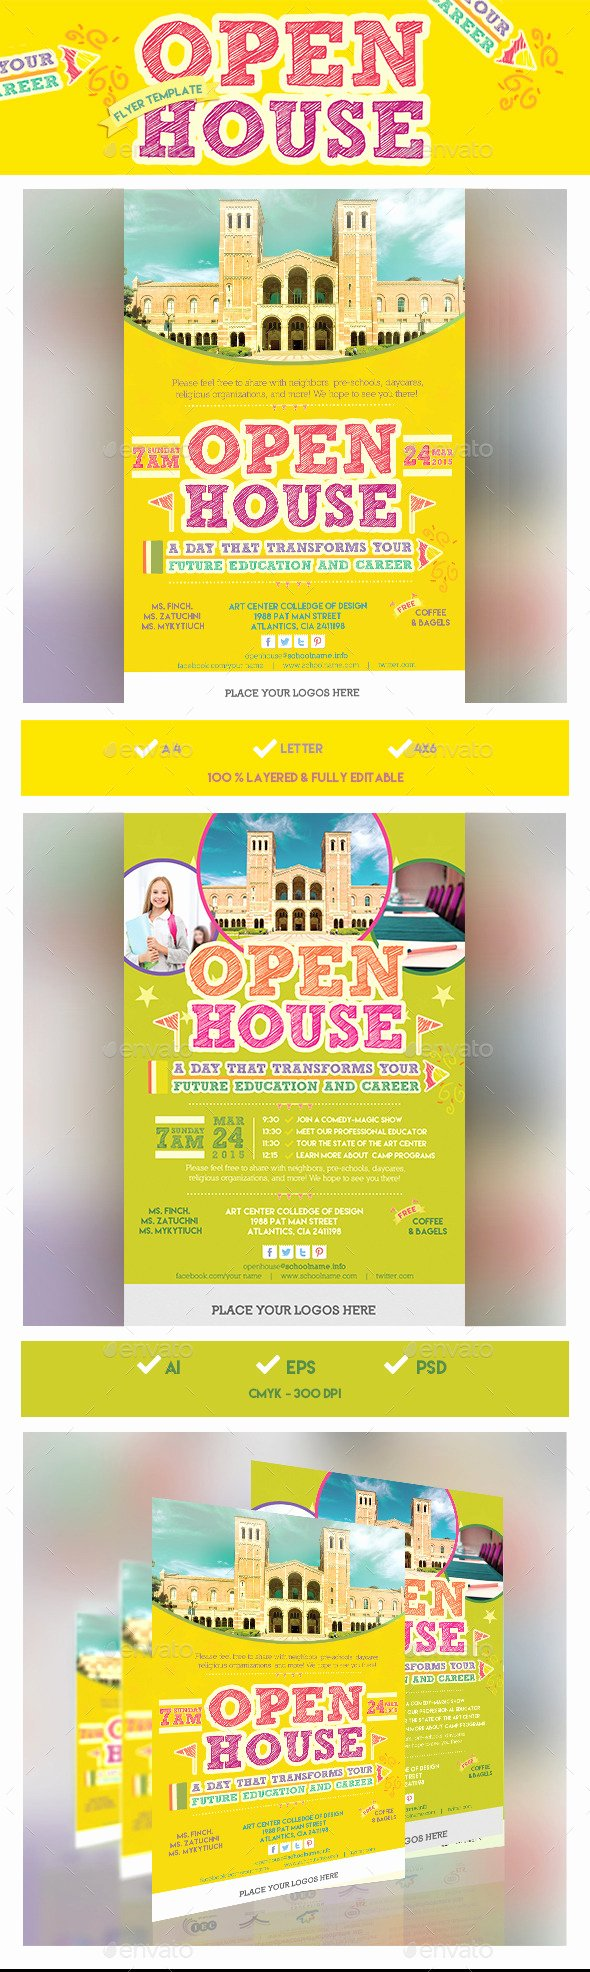 Open House Brochure Template Elegant School Open House Flyer Template Design Conference